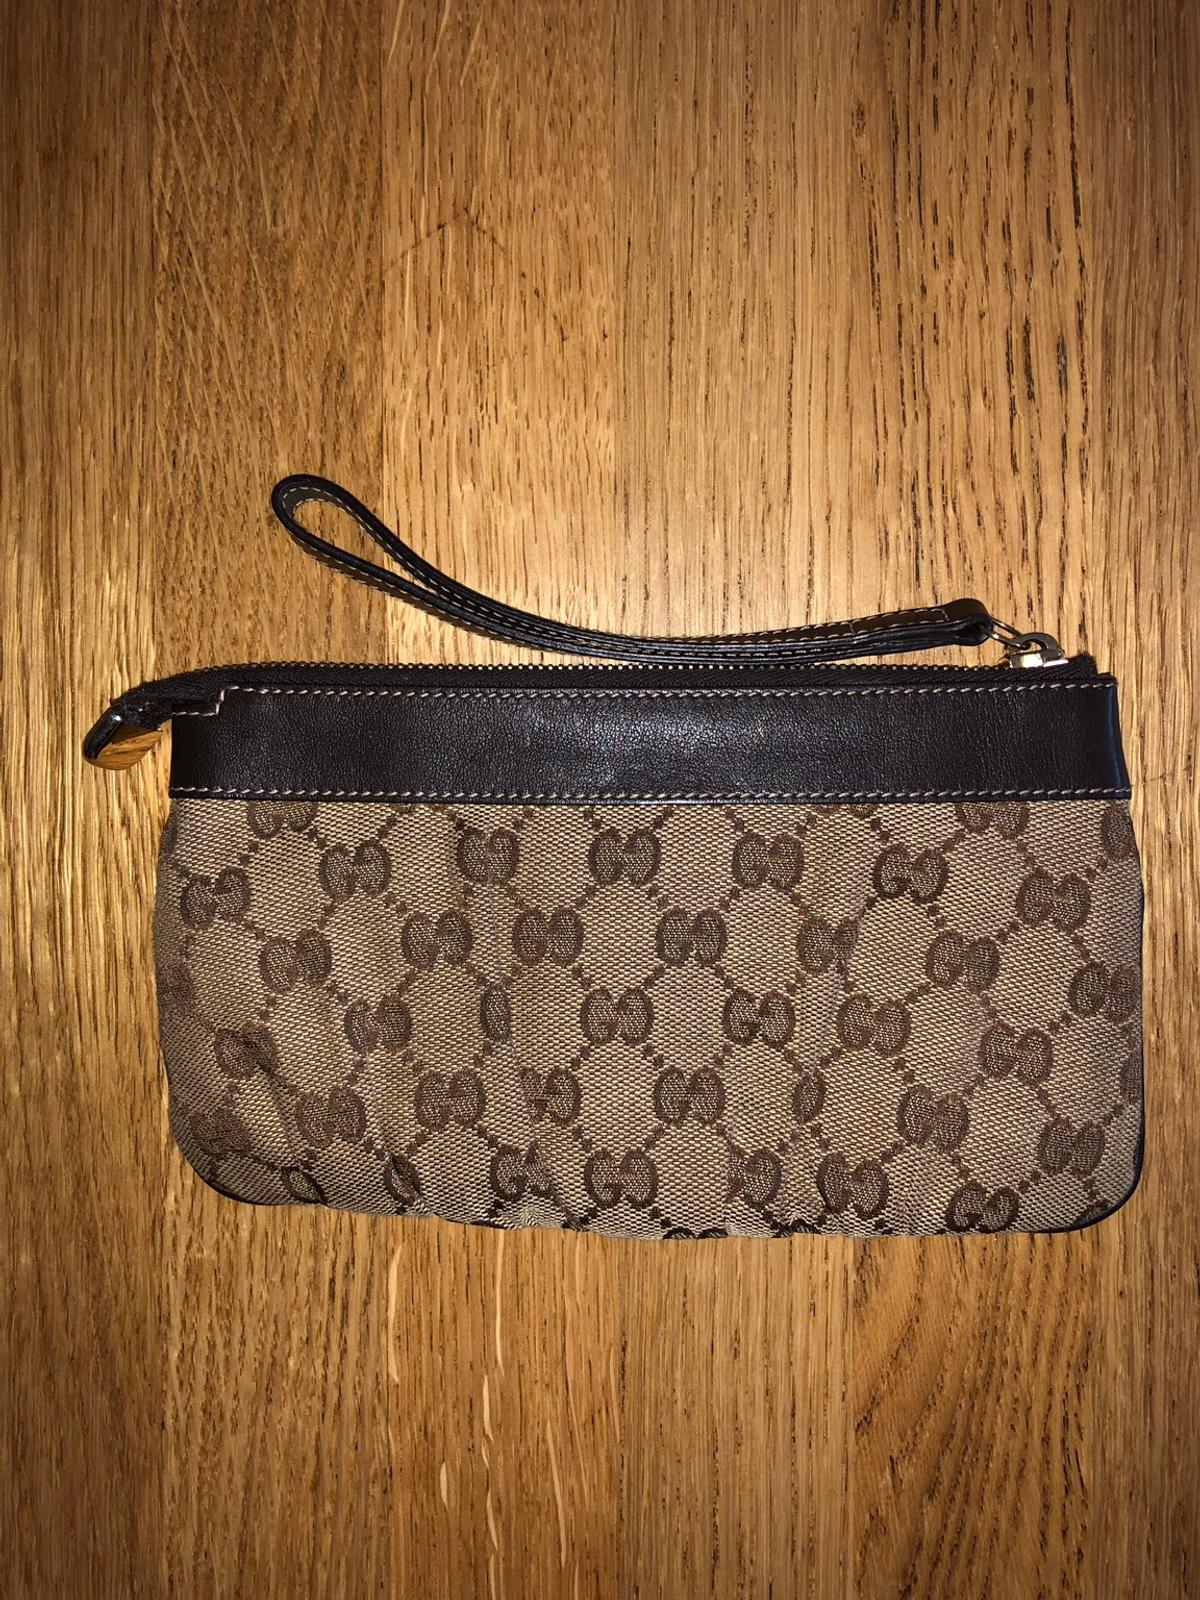 87f3f6721 Genuine Gucci Clutch Bag in SE20 London Borough of Bromley for ...